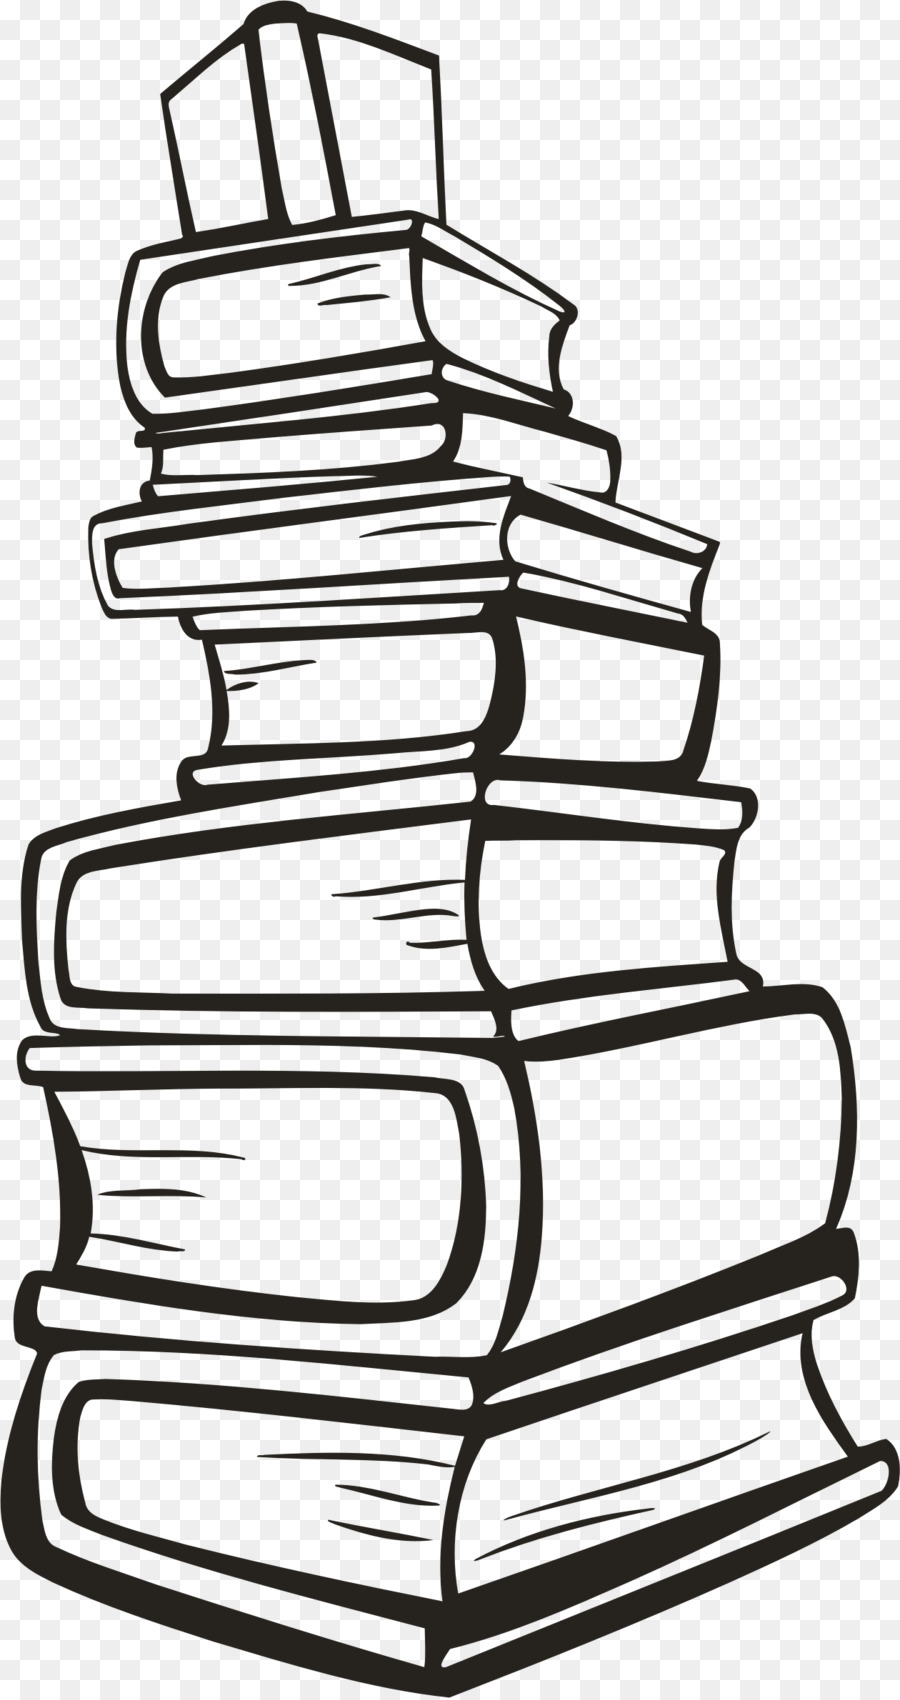 hight resolution of stack of books svg clipart book clip art